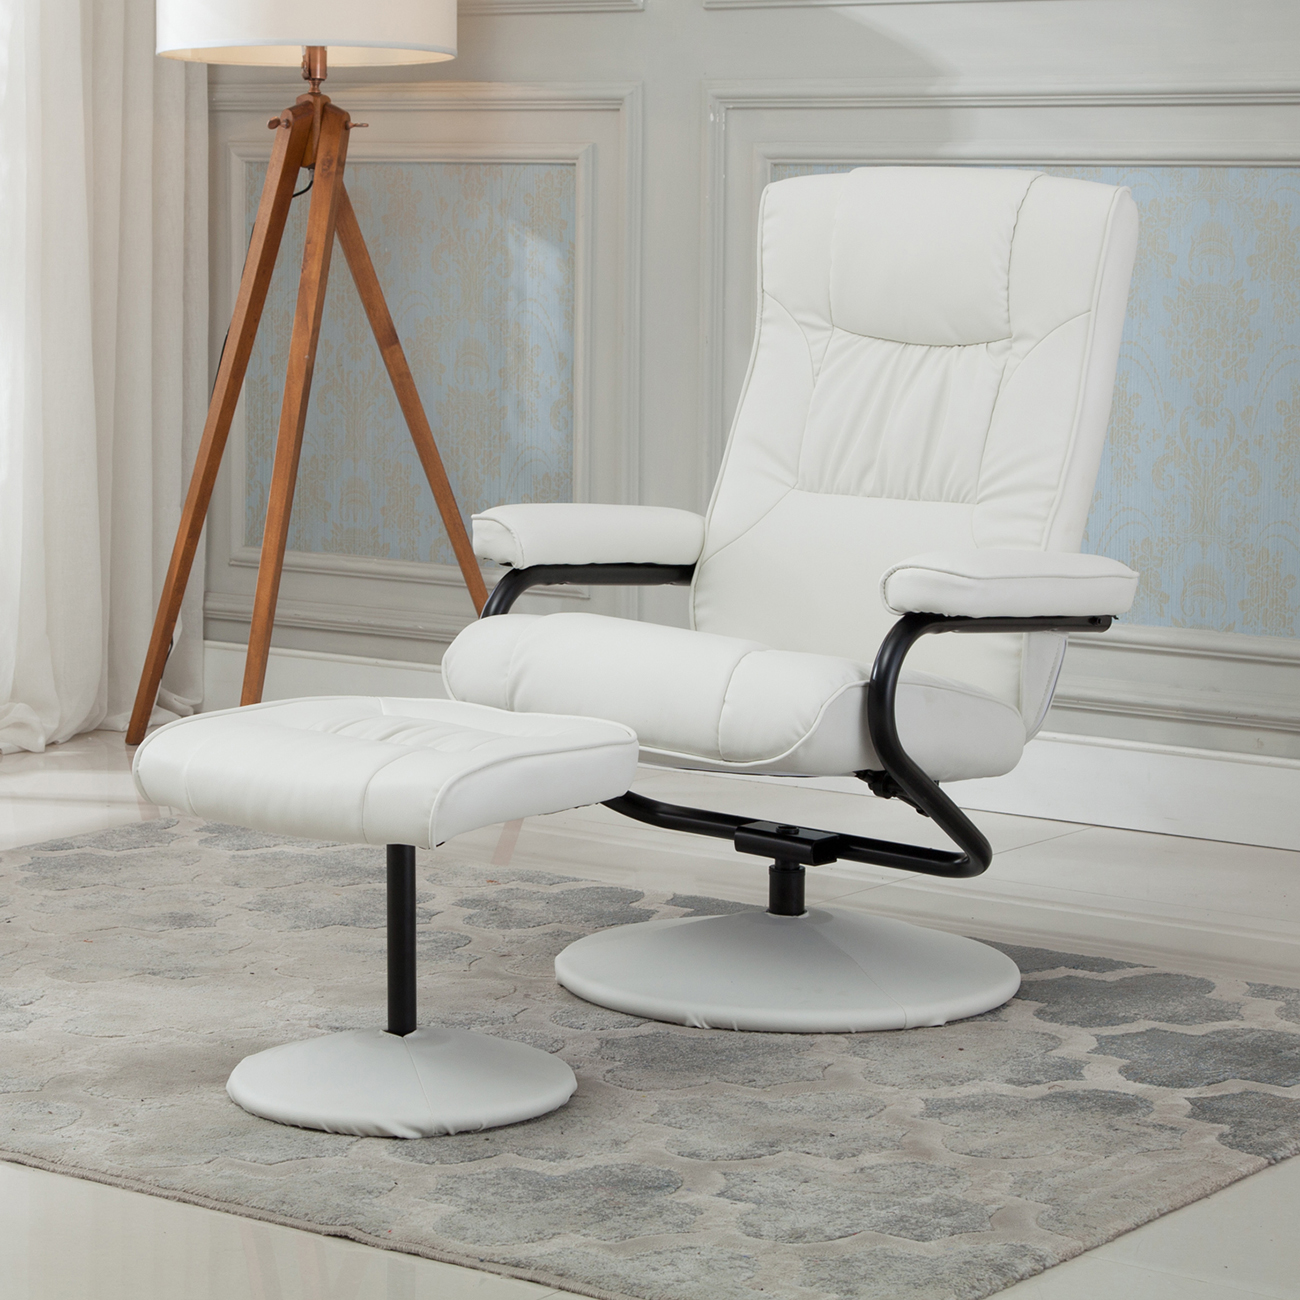 Belleze Premium Faux Leather Recliner u0026 Ottoman Set Reclining Chair Home Living Room White & Faux Leather Recliners islam-shia.org